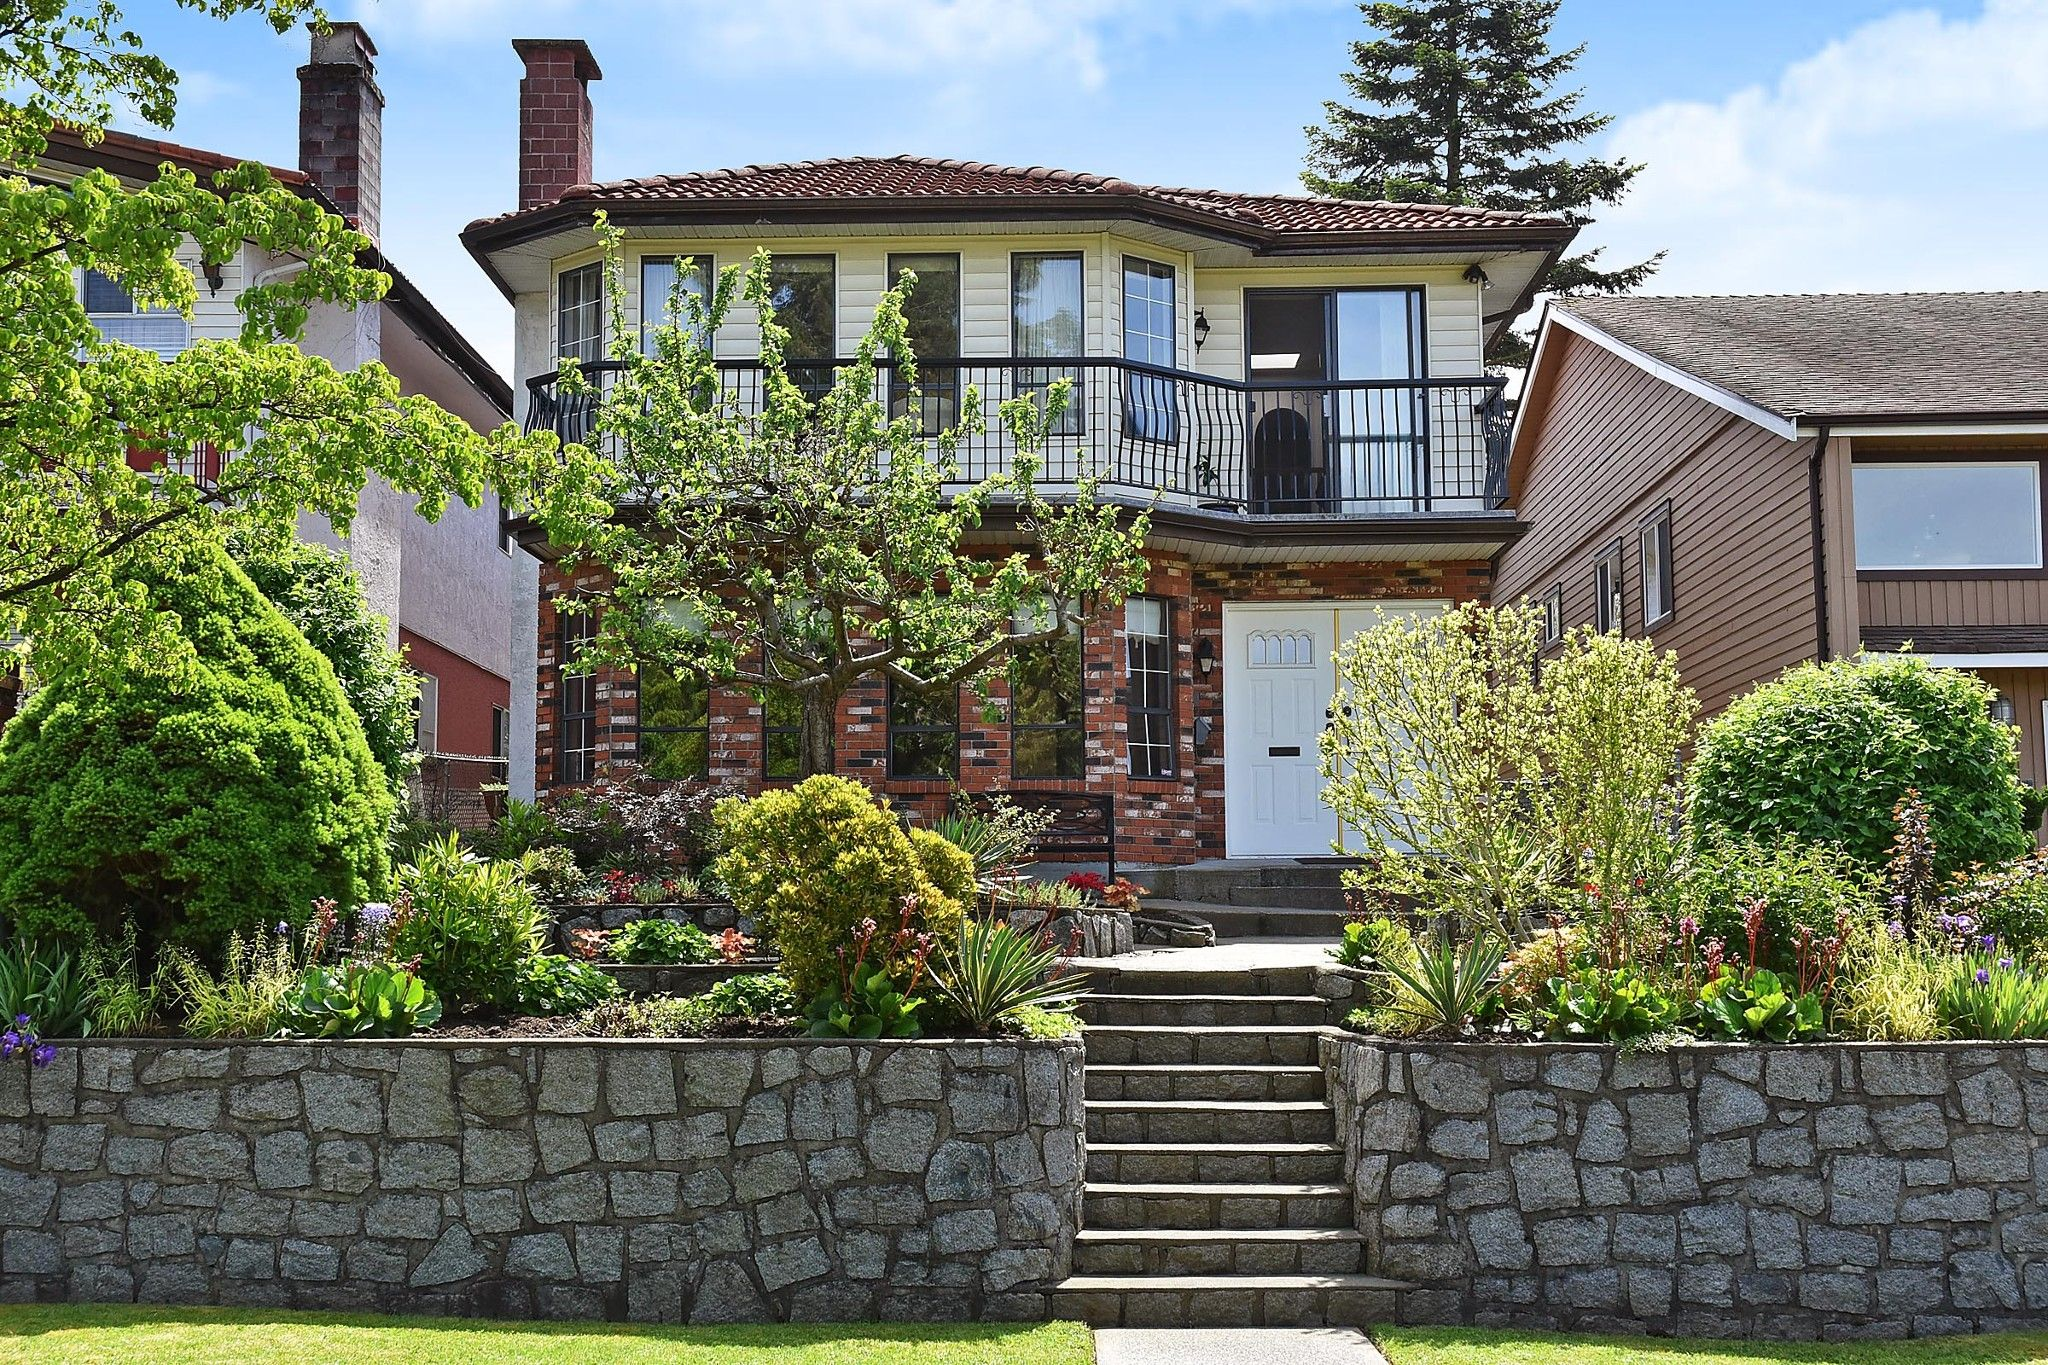 Main Photo: 2860 CHARLES Street in Vancouver: Renfrew VE House for sale (Vancouver East)  : MLS®# R2371682